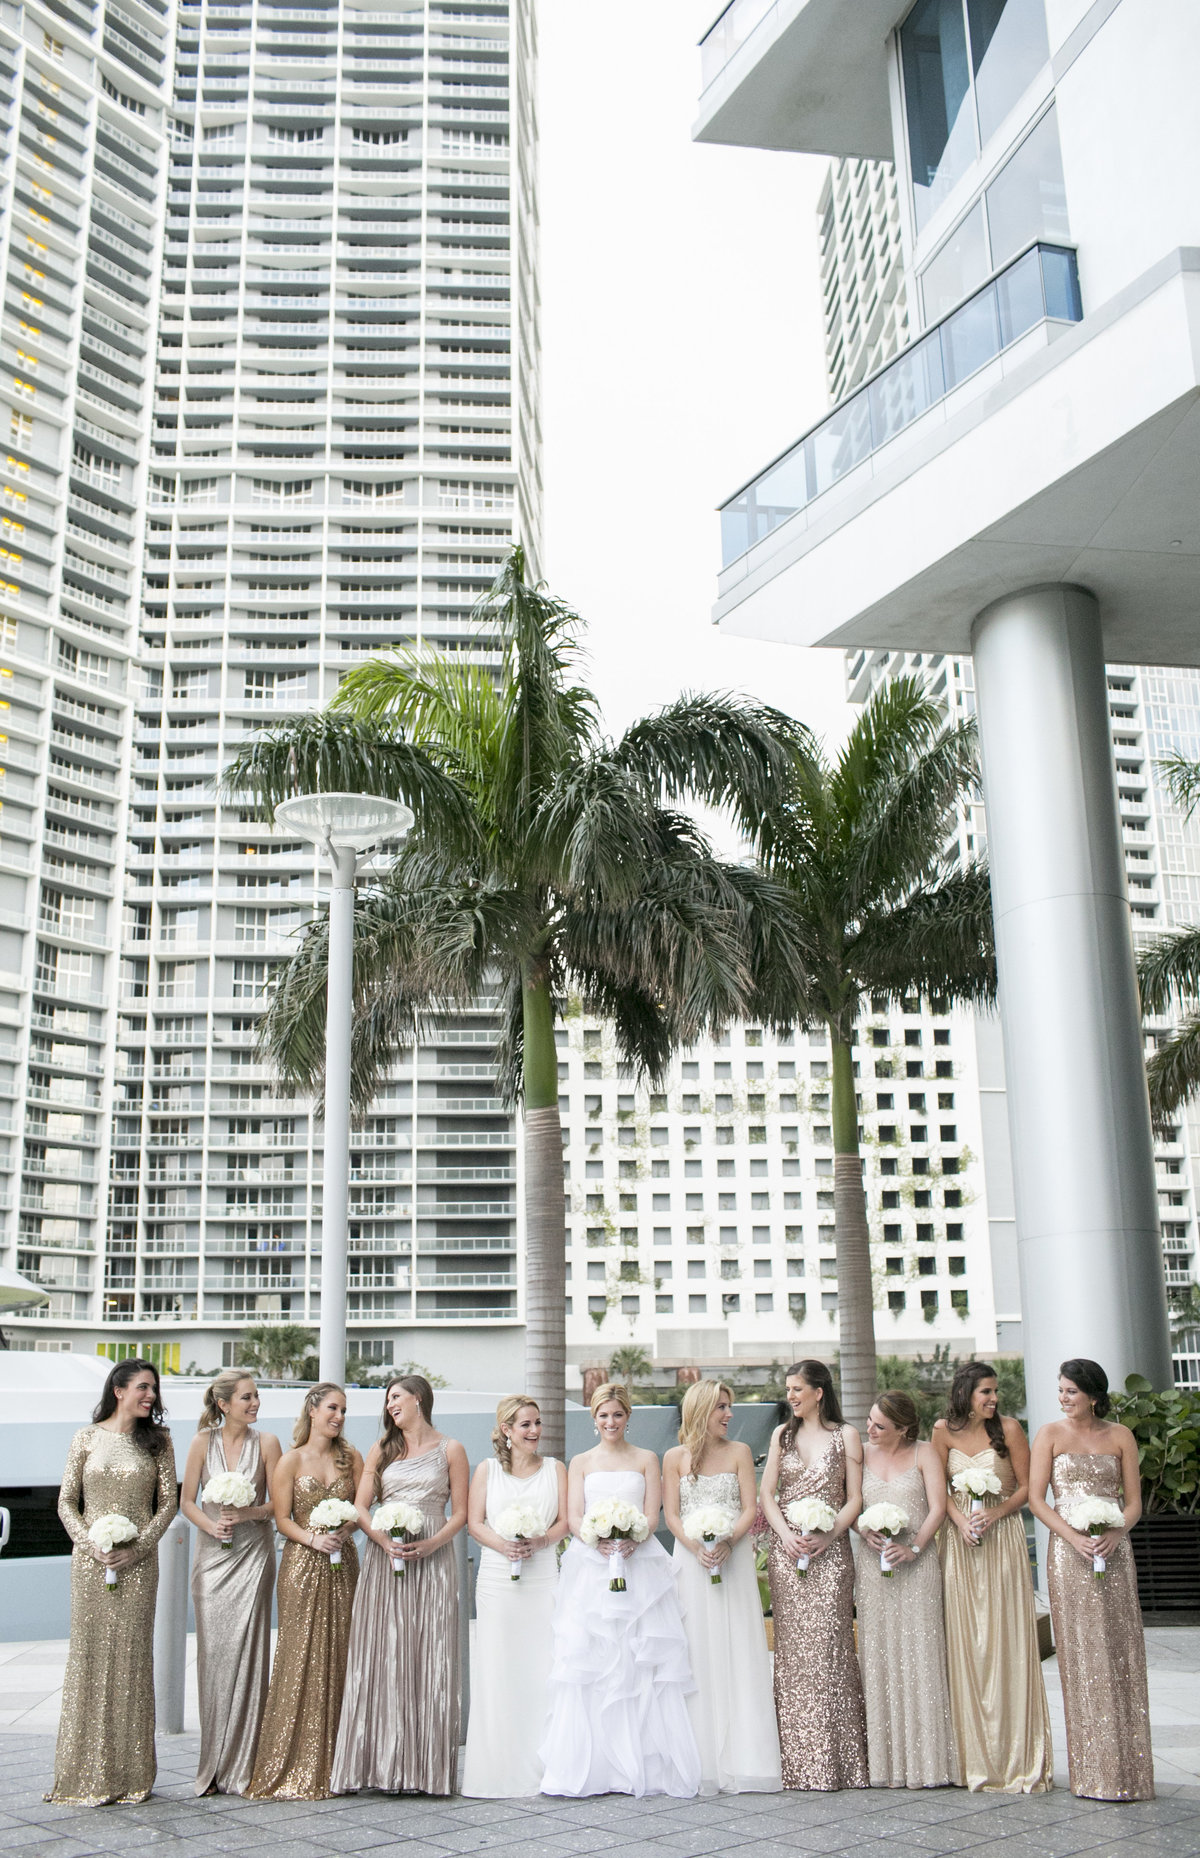 epic hotel wedding party in gold dresses